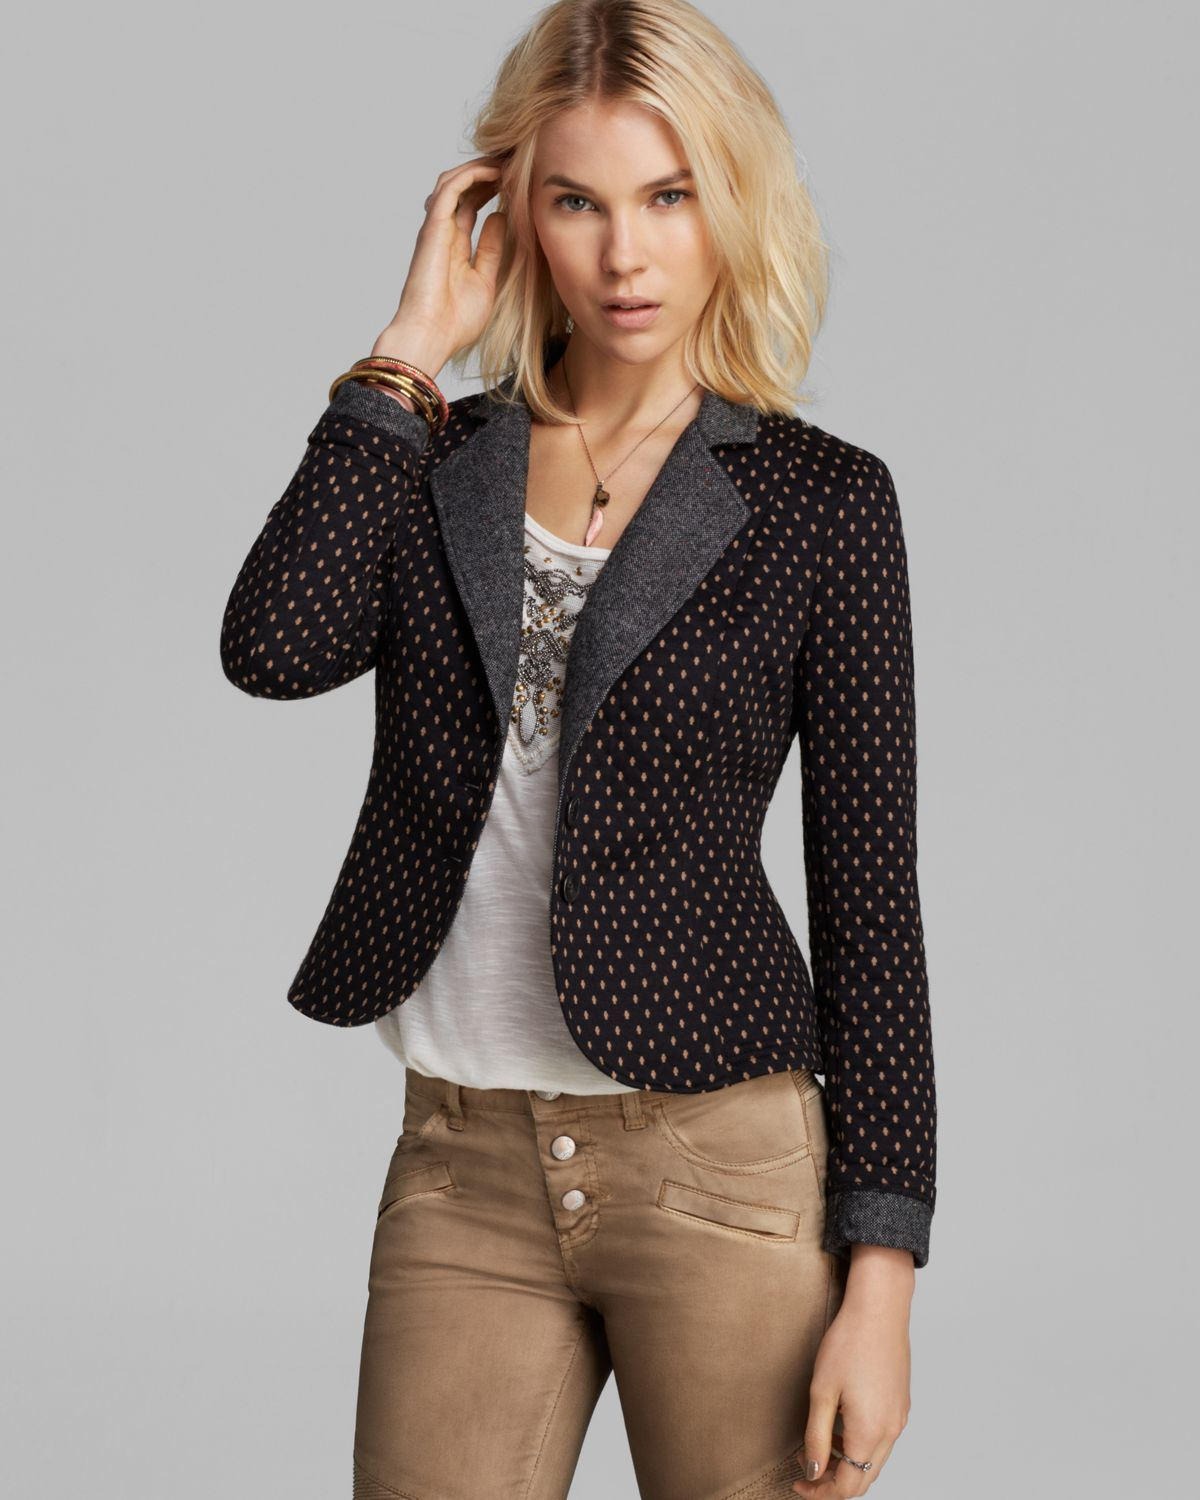 Free People Blazer Diamond Textured Knit Polka Dot In